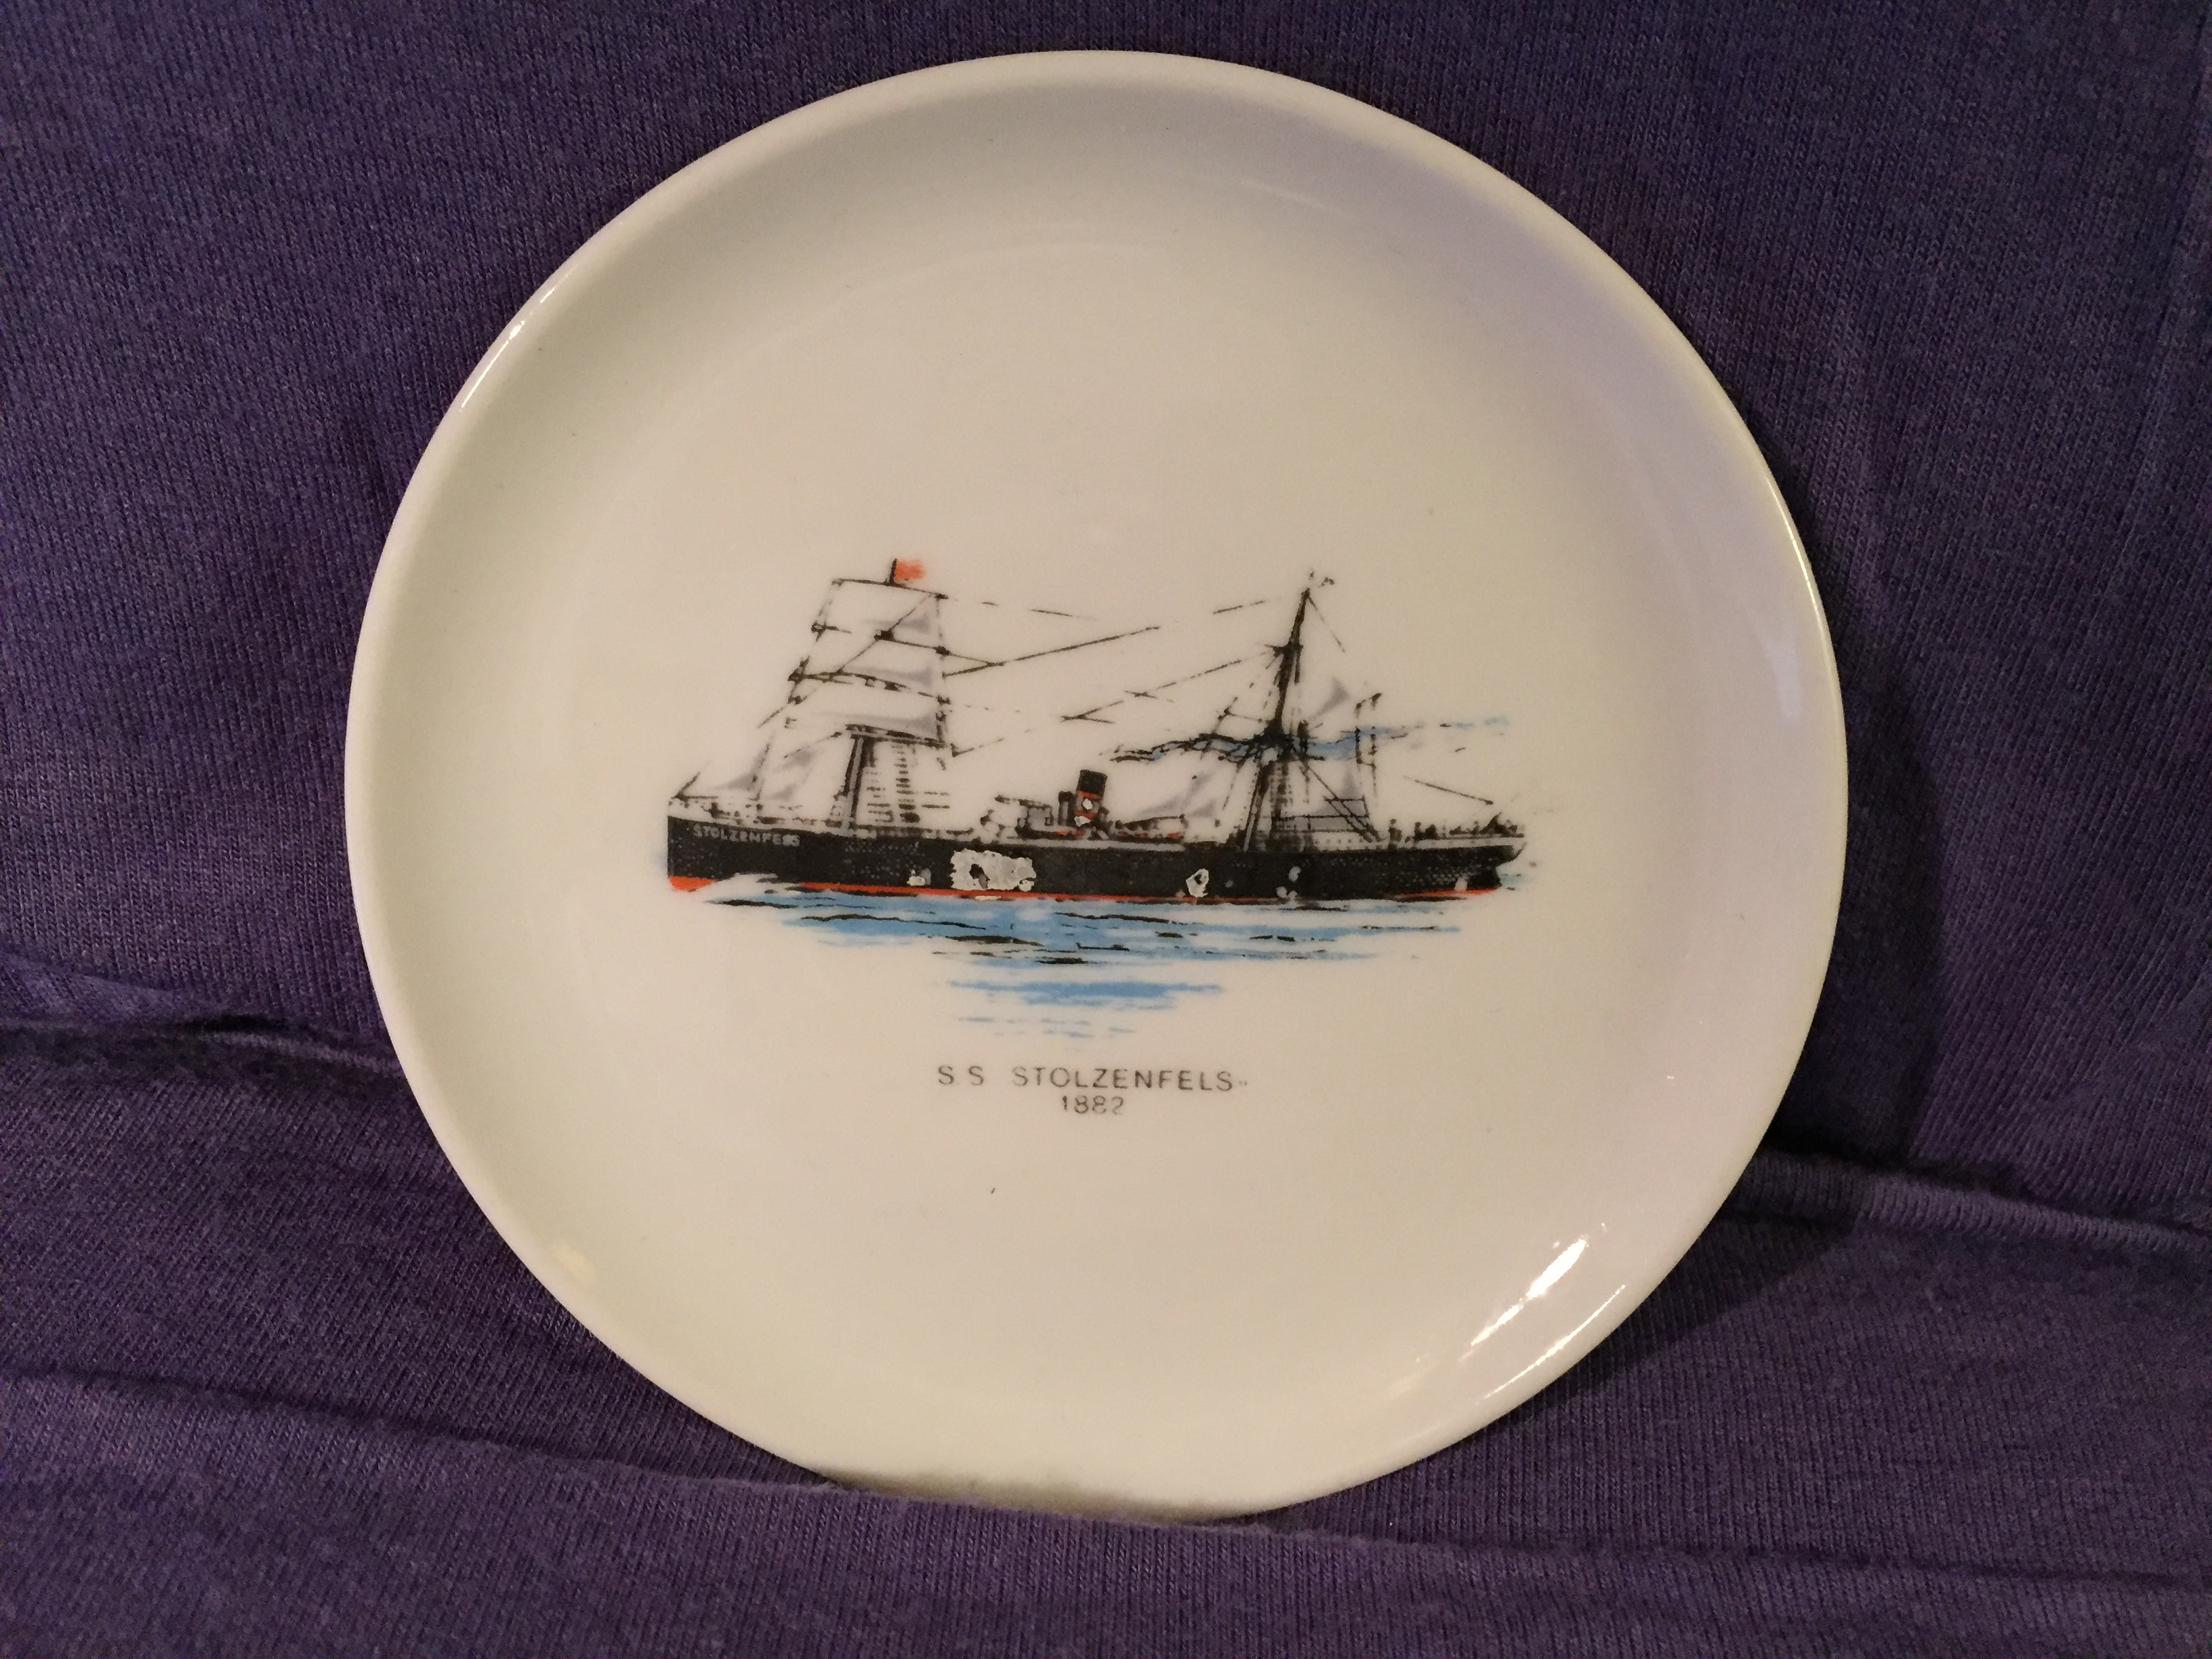 SMALL SOUVENIR DISH FROM THE VESSEL THE SS STOLENFELZ